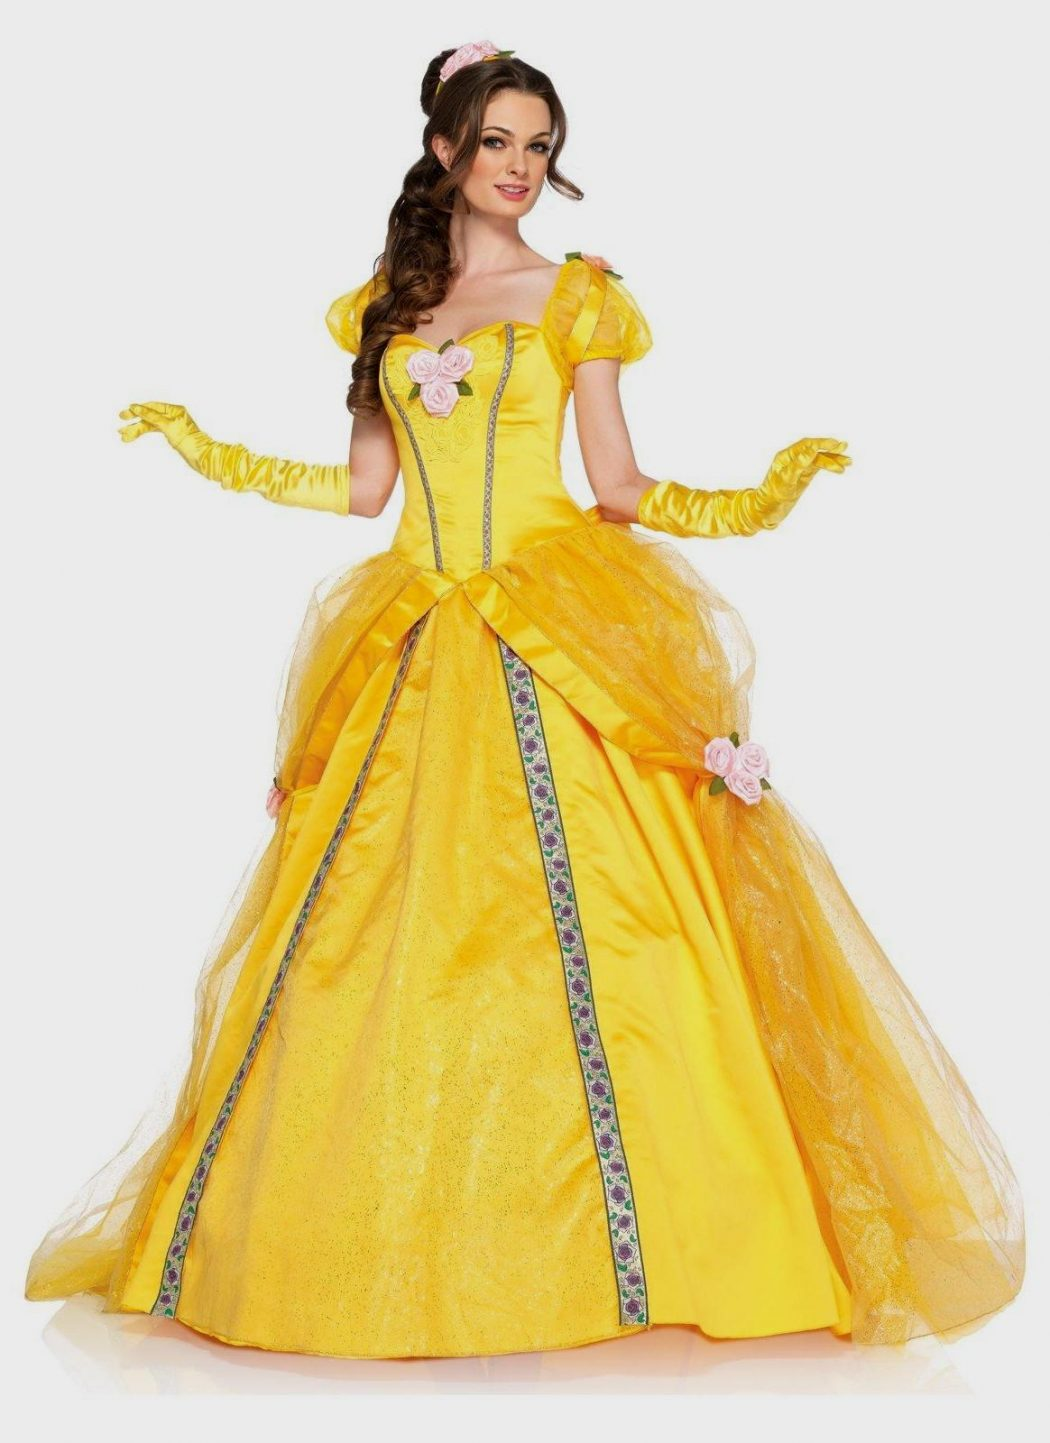 Princess1 Top 10 Teenagers Halloween Costumes Trends